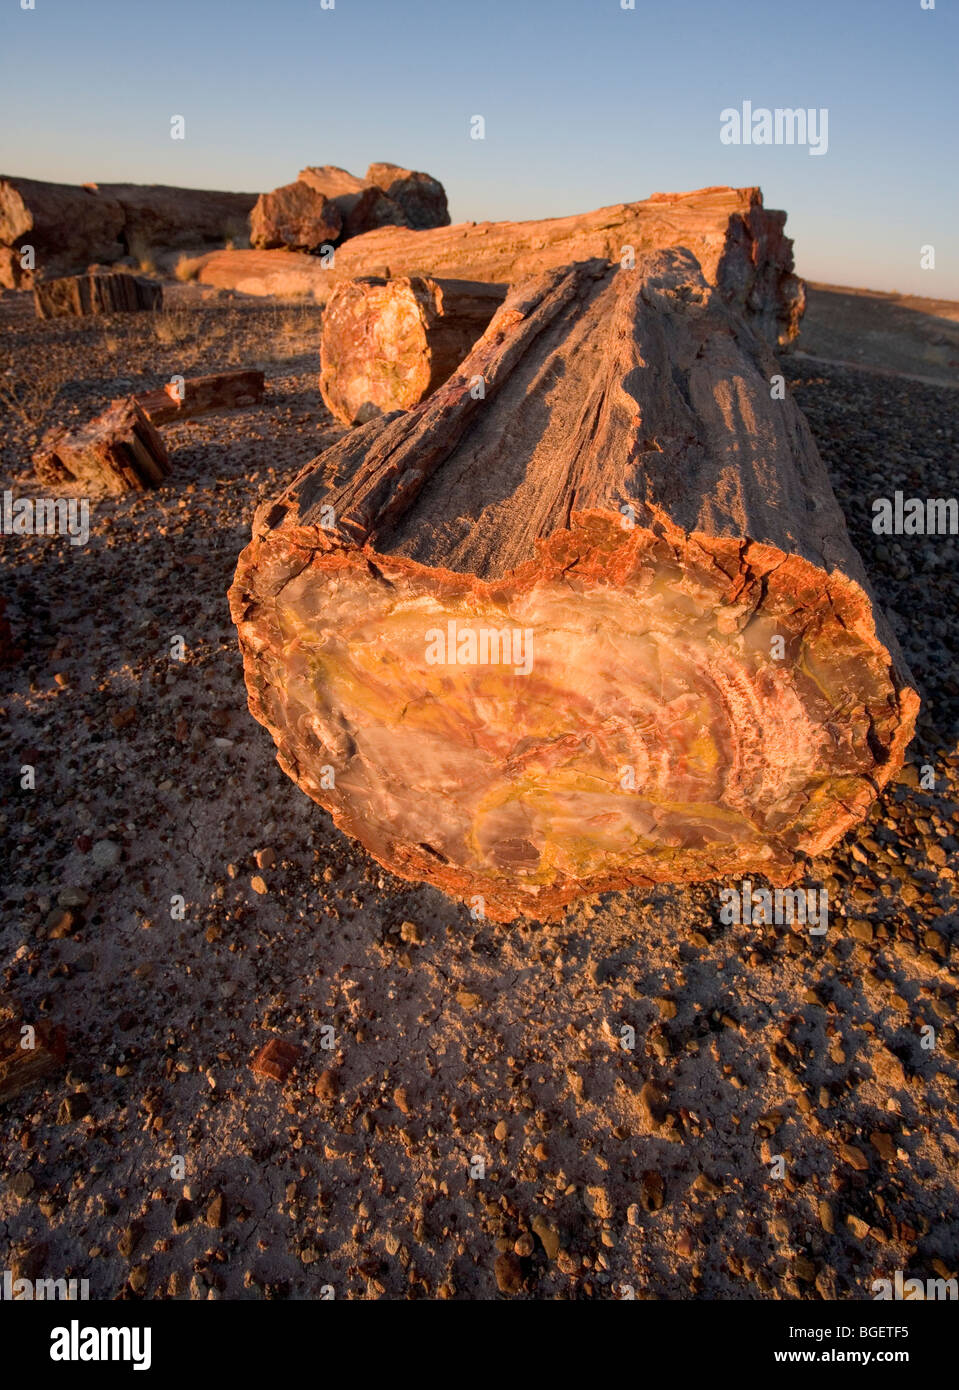 Whole and broken petrified logs at Petrified Forest National Park in Arizona, USA. - Stock Image